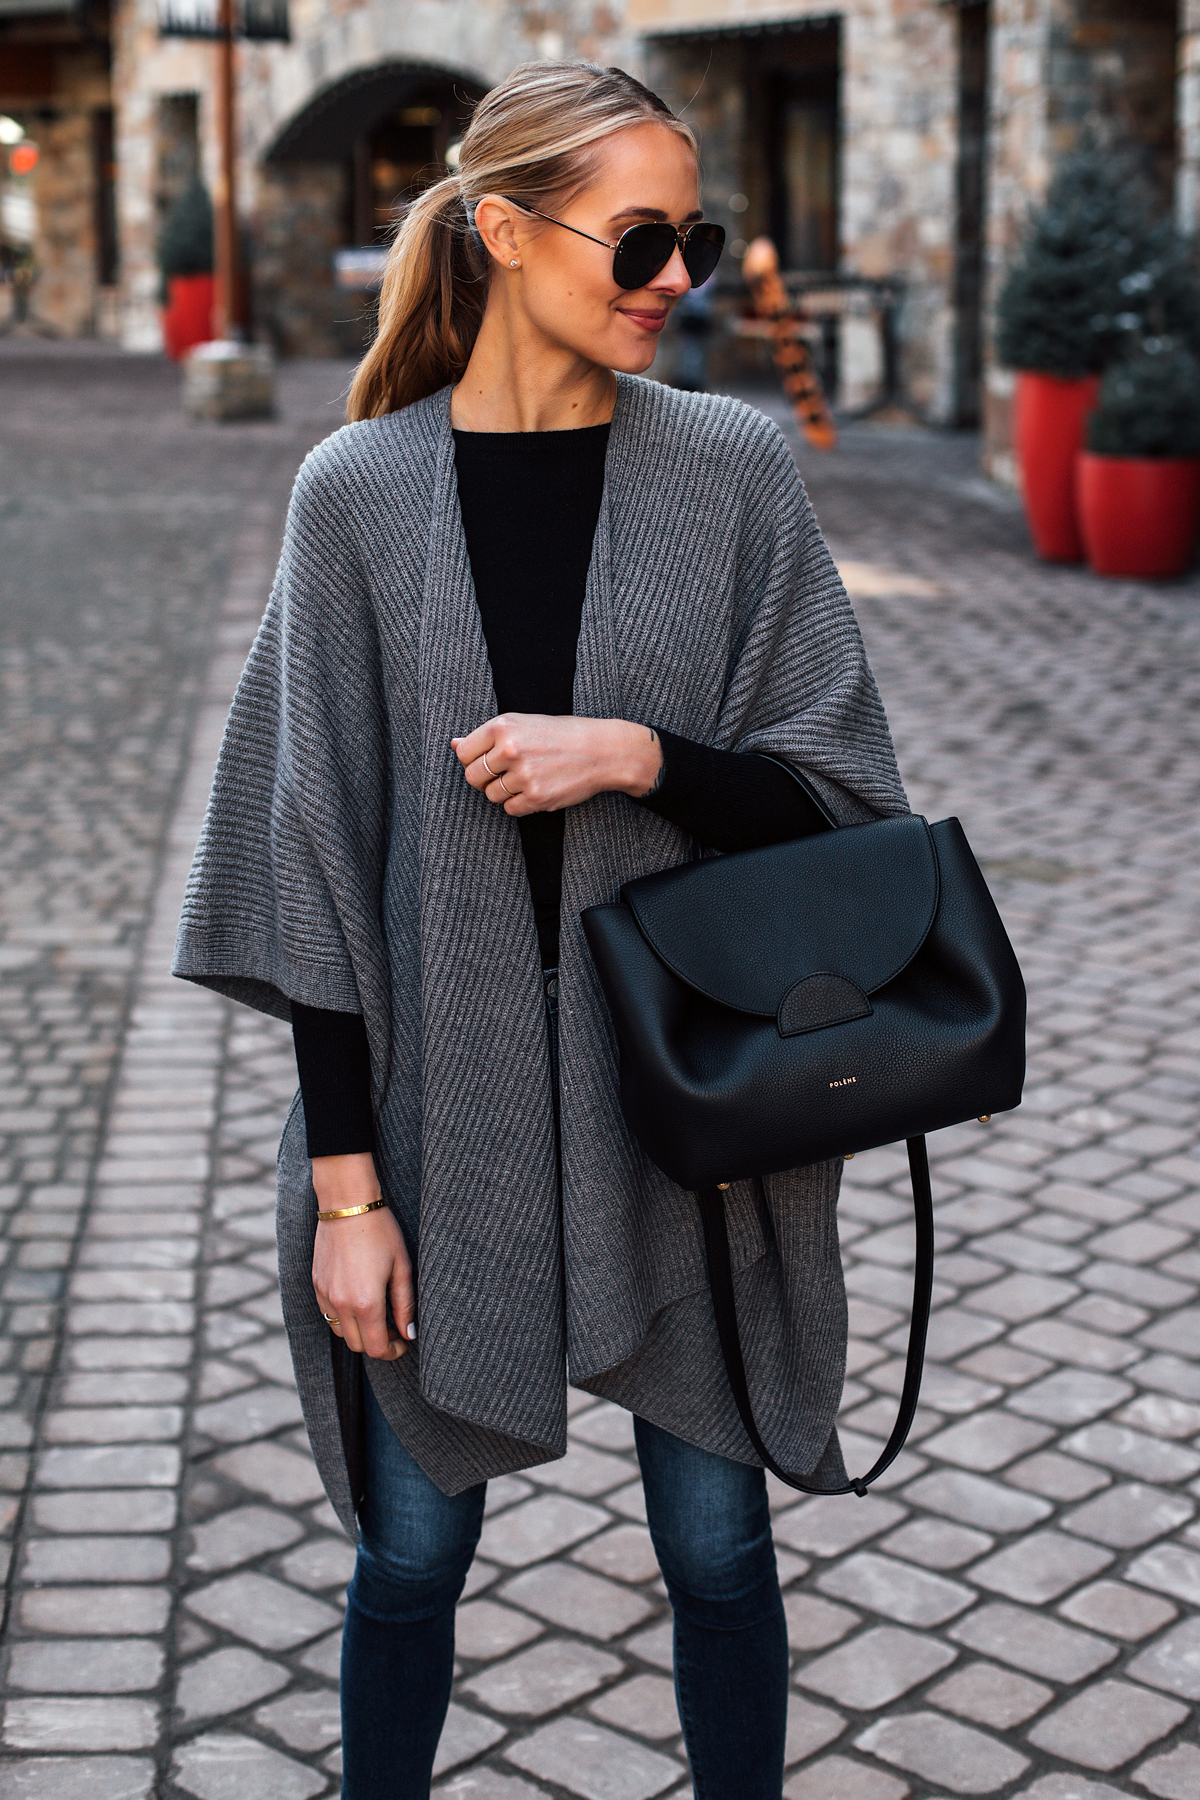 Blonde Woman Wearing Grey Sweater Poncho Black Top Denim Skinny Jeans Polene Black Handbag Outfit Fashion Jackson San Diego Fashion Blogger Street Style